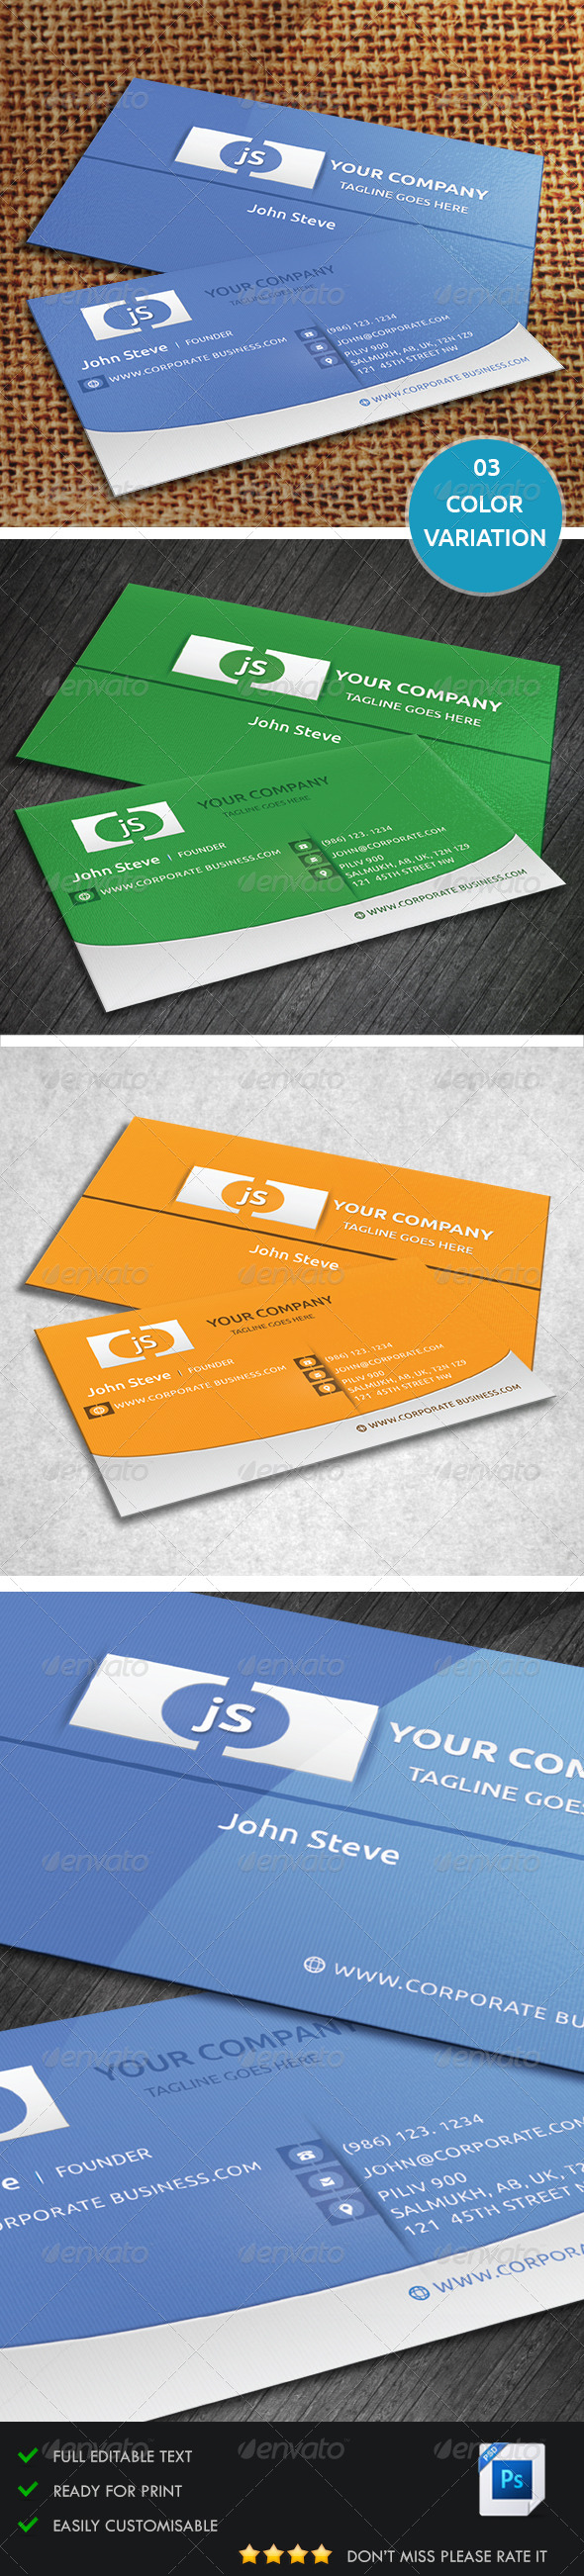 GraphicRiver Corporate Business Card v2 5385507